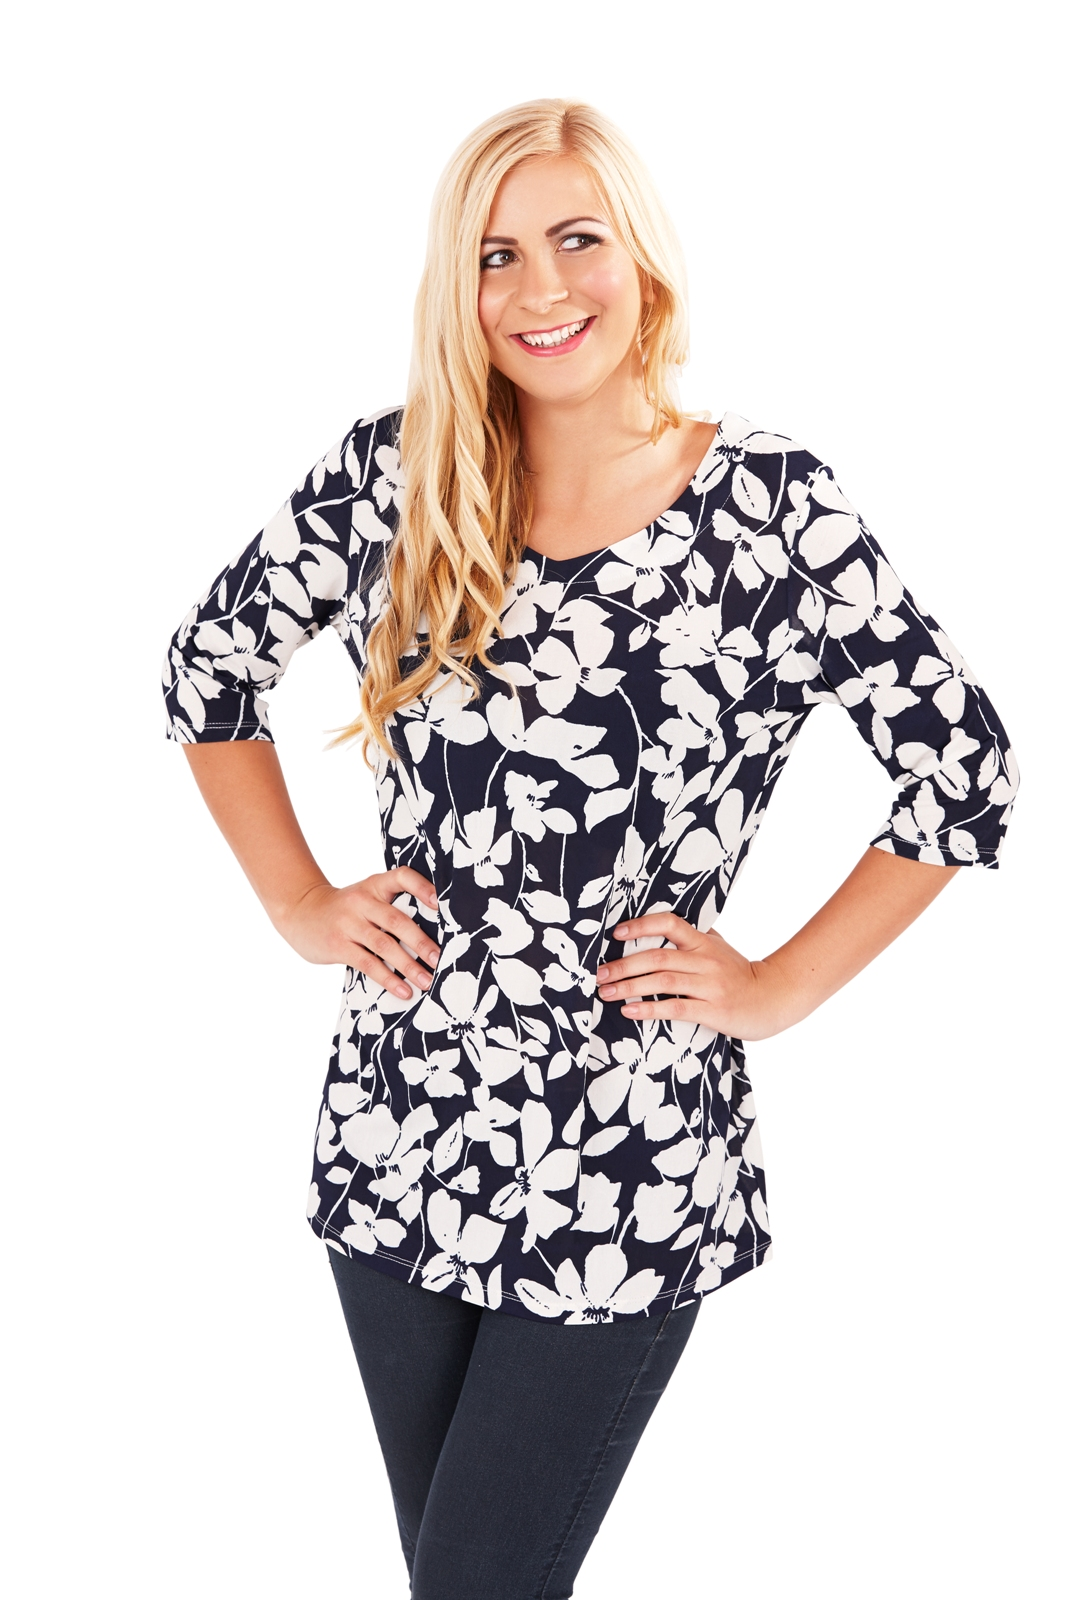 10252 T502 Navy womens paisley tunic top navy blue summer blouse ladies clothing,Ebay Womens Clothing Size 8